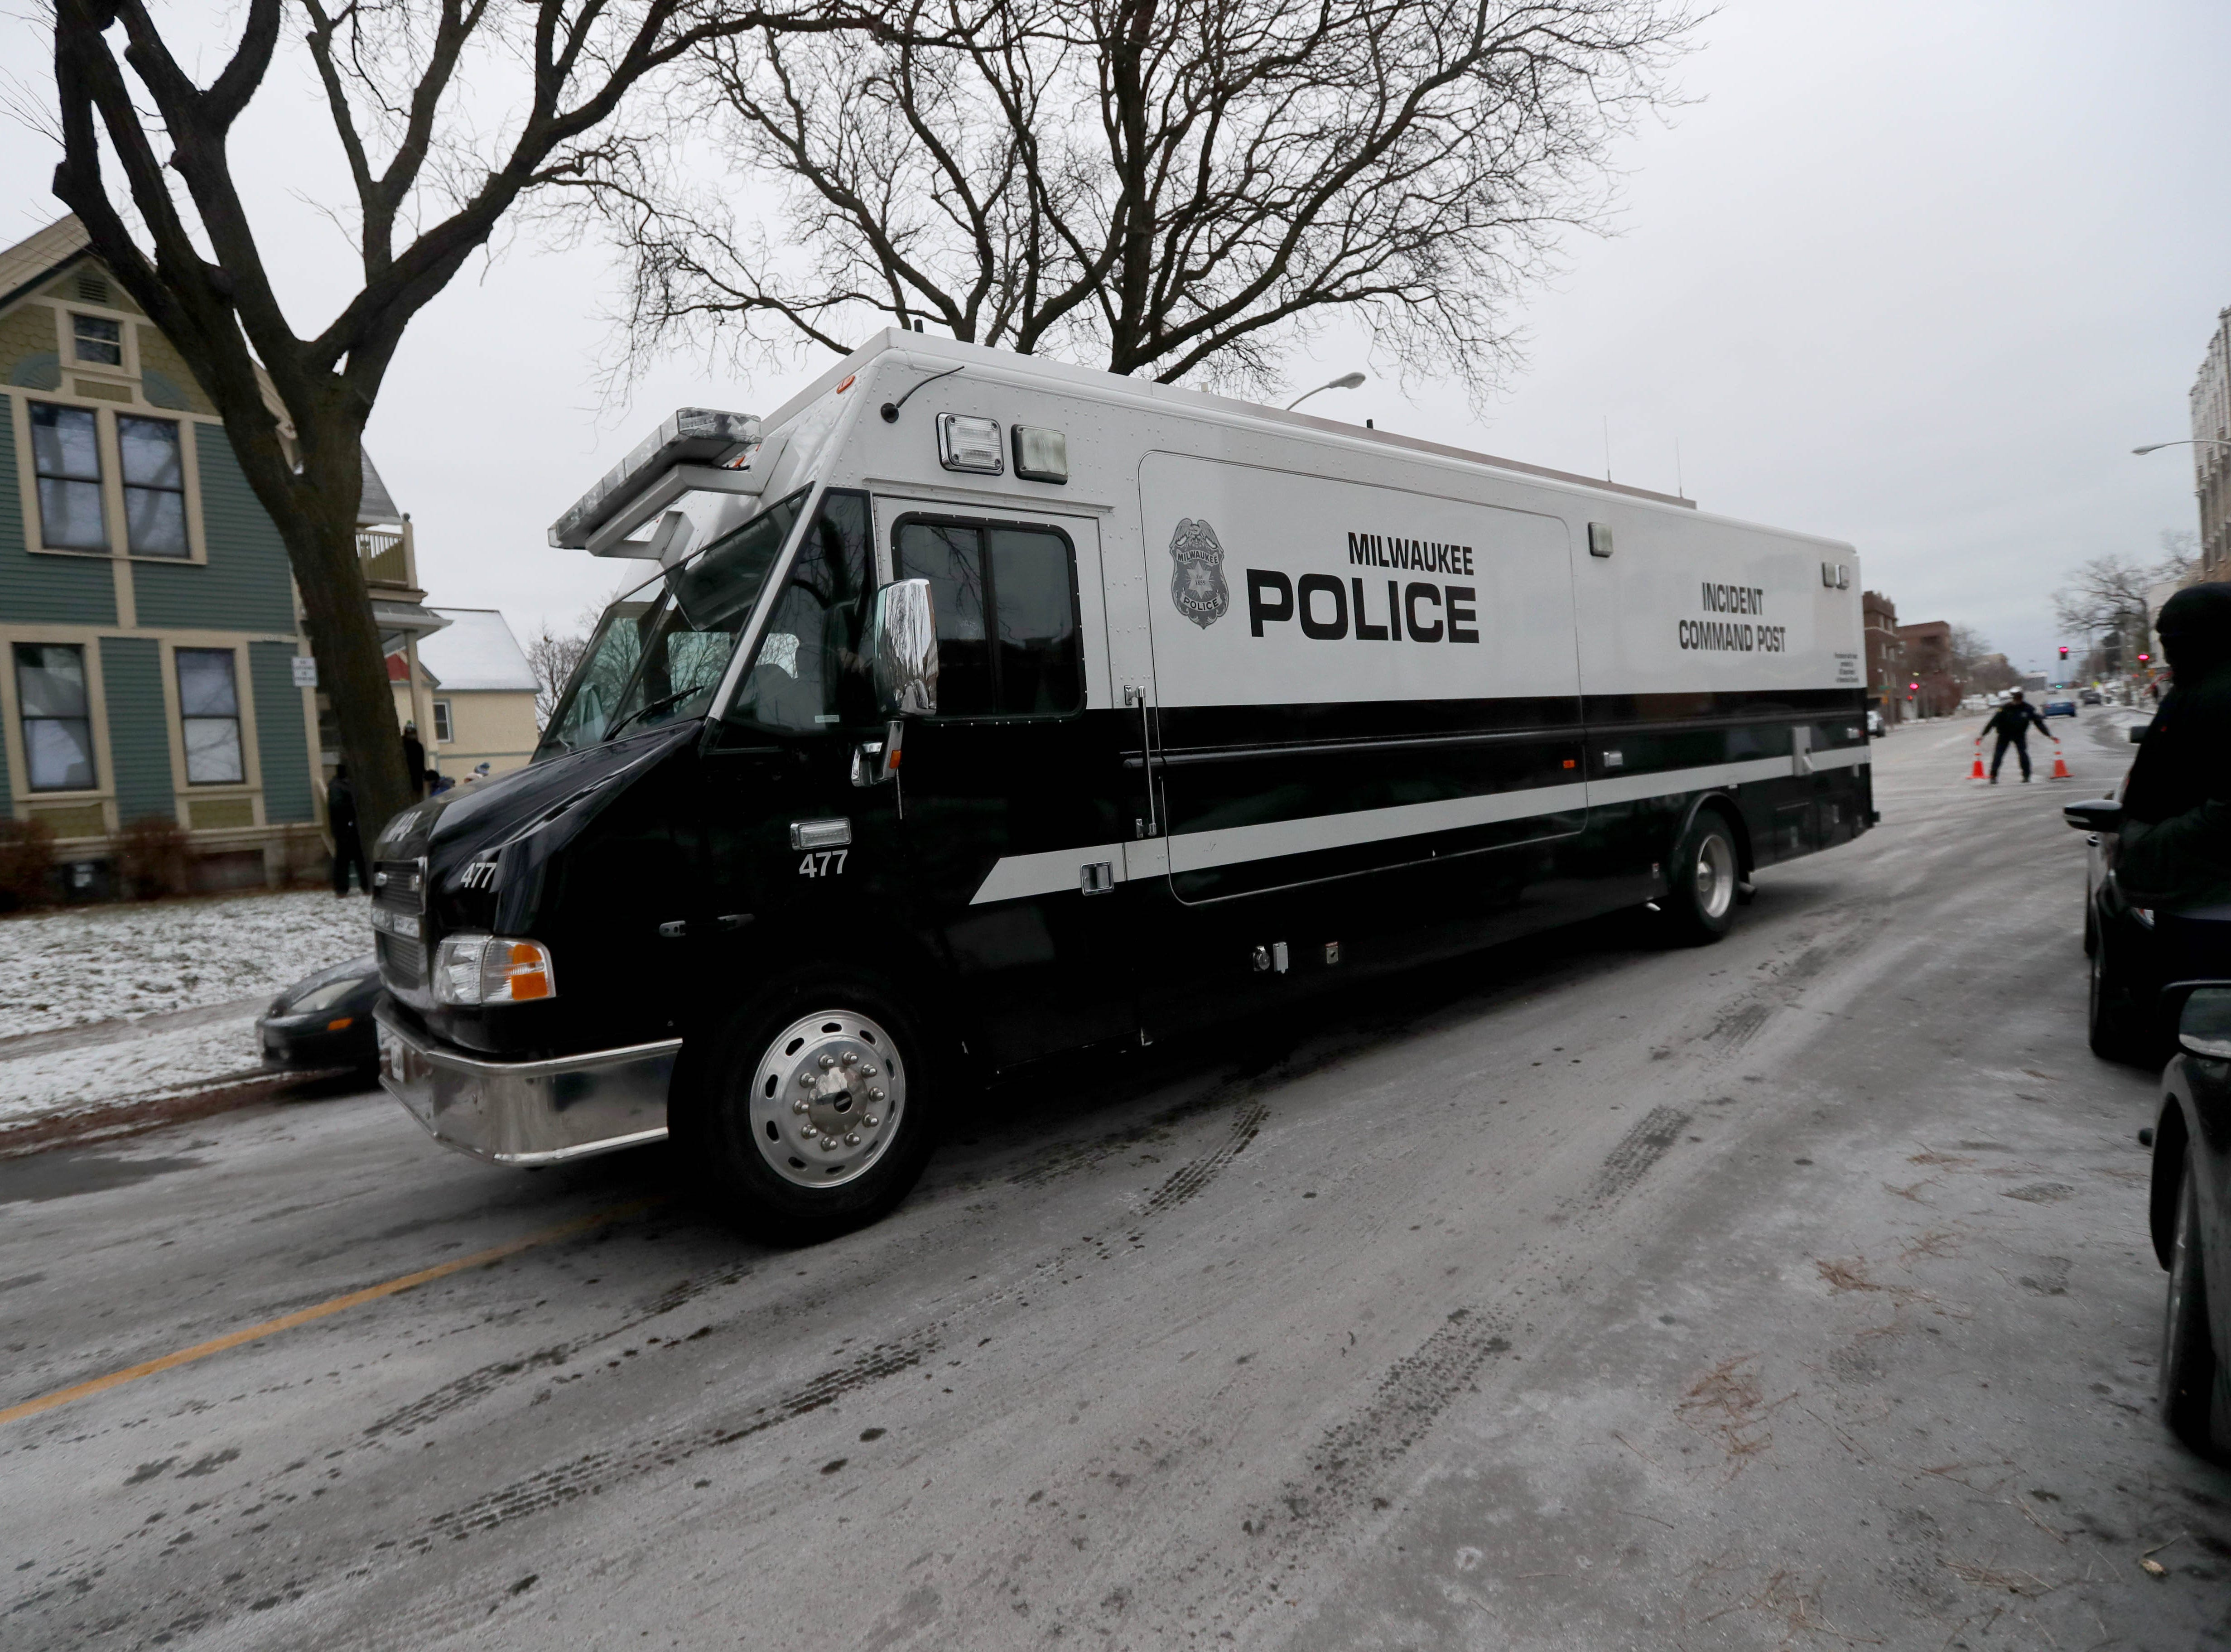 An incident command post arrives on the scene.